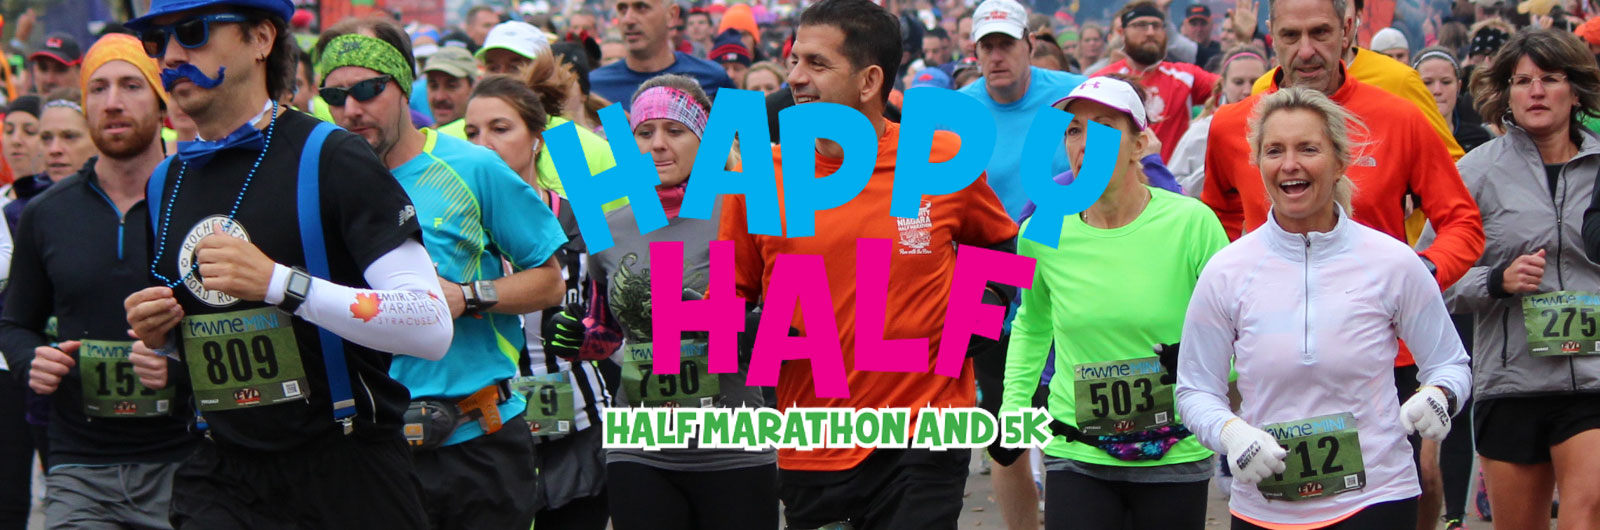 runners in the Happy Half marathon